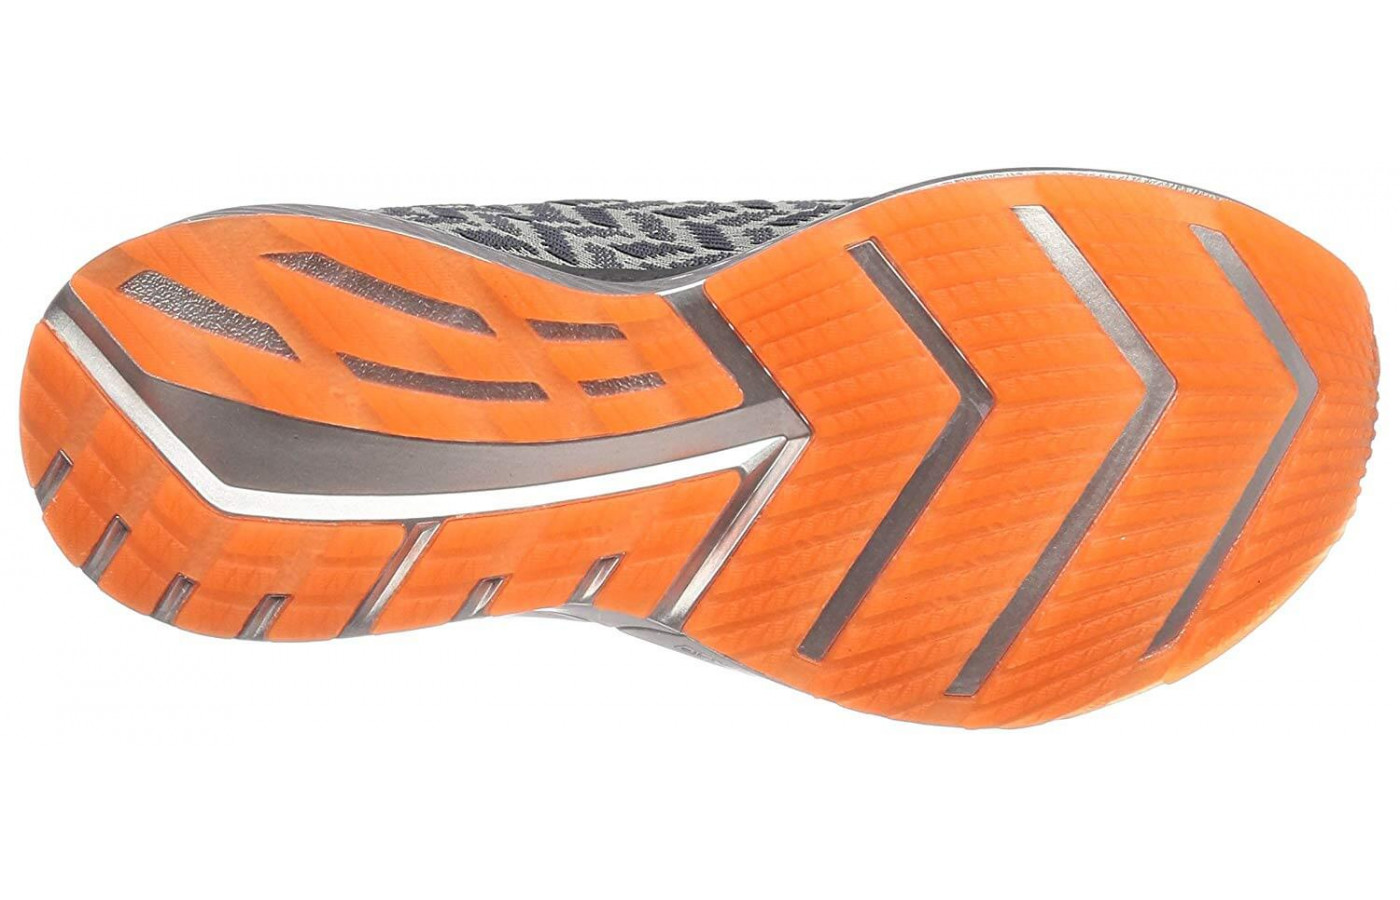 The Bedlam's outsole is equipped with a Midfoot Transition Zone